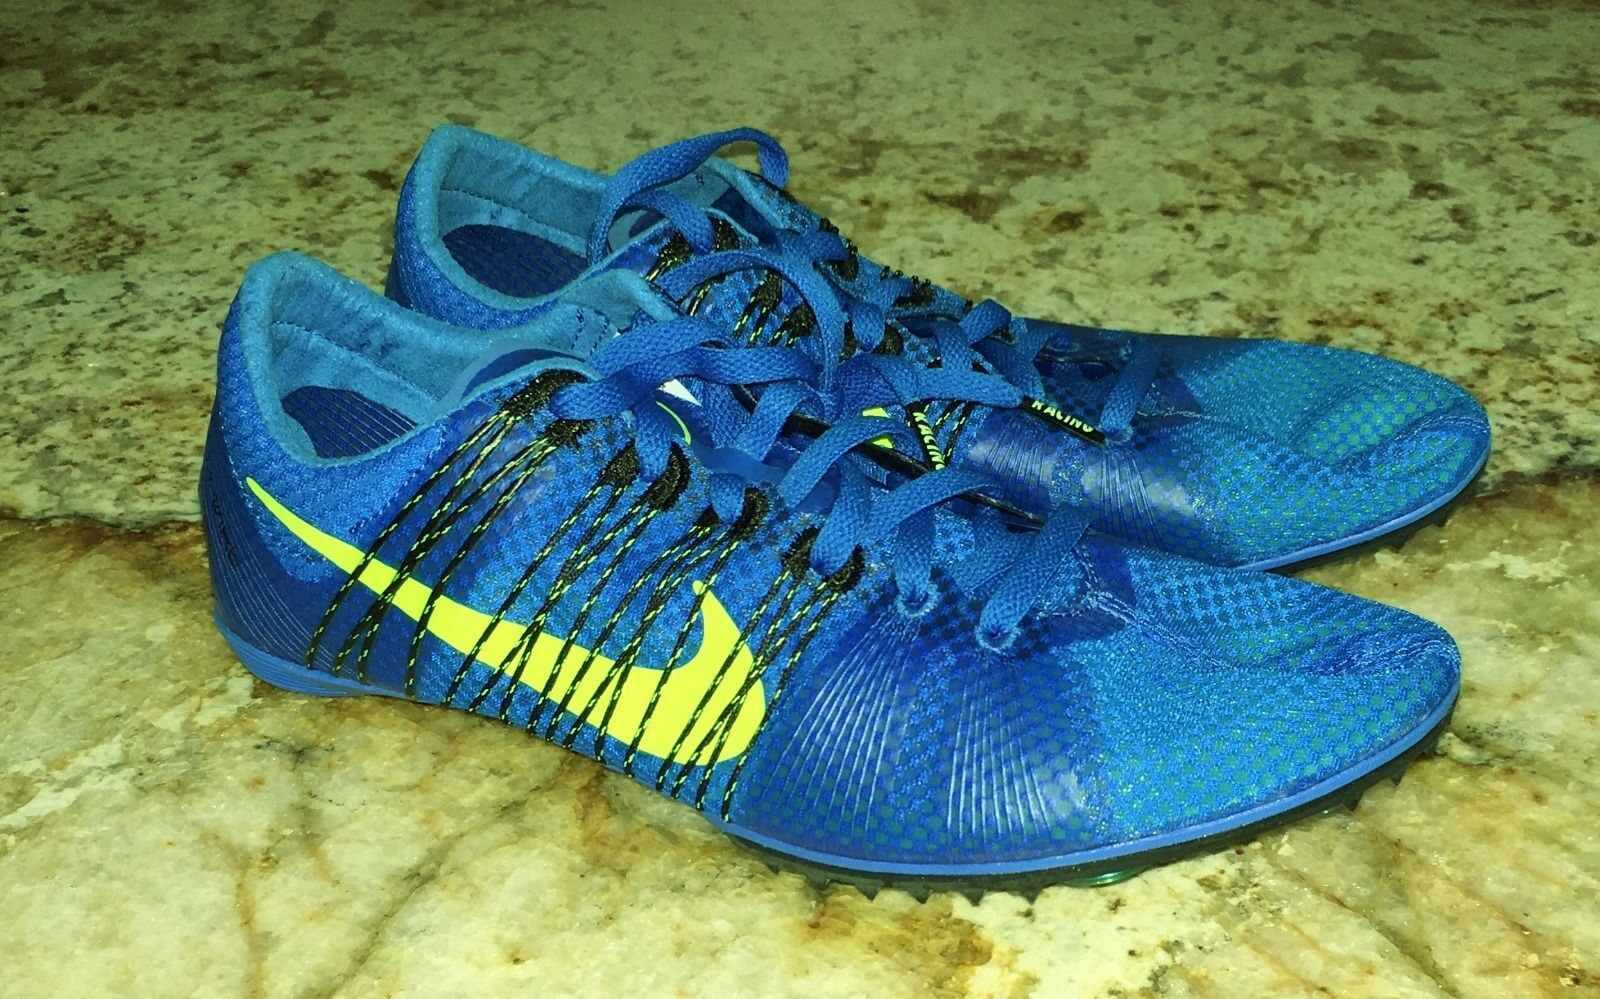 NIKE Victory 2 Blue Volt Mid Distance Track Spikes Shoes MENS 6.5 10.5 11.5 14